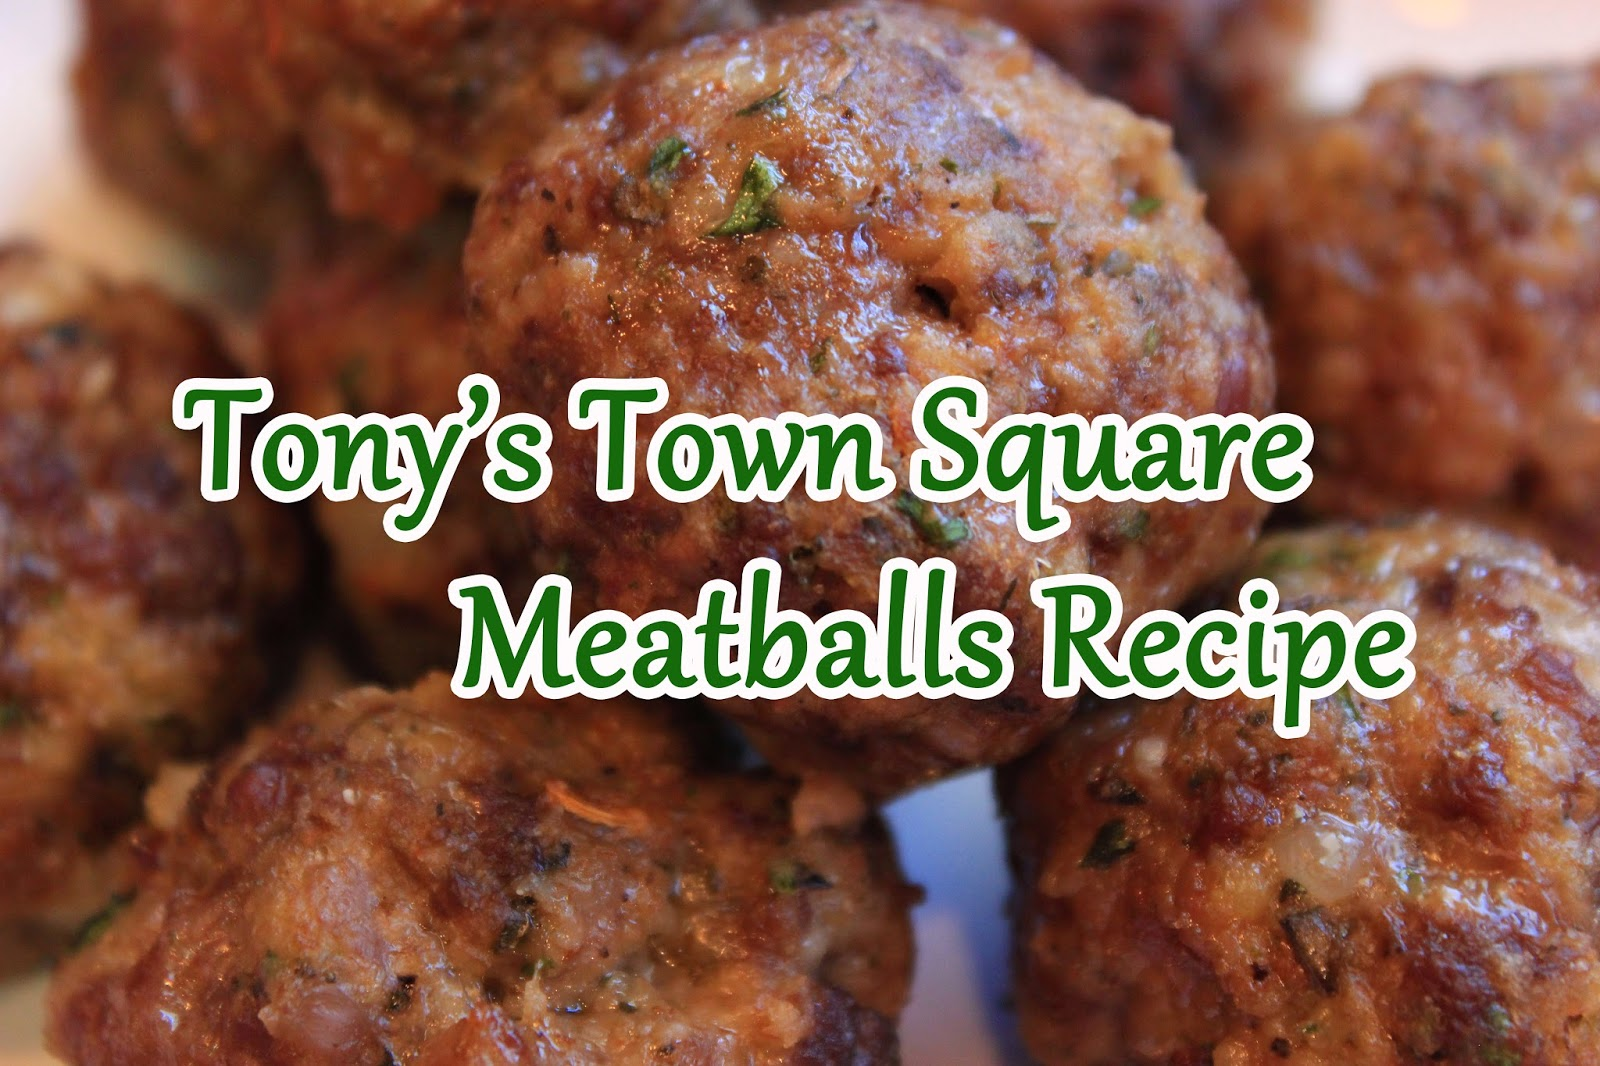 Italian Meatballs Recipe from Tony's Town Square (Magic Kingdom)